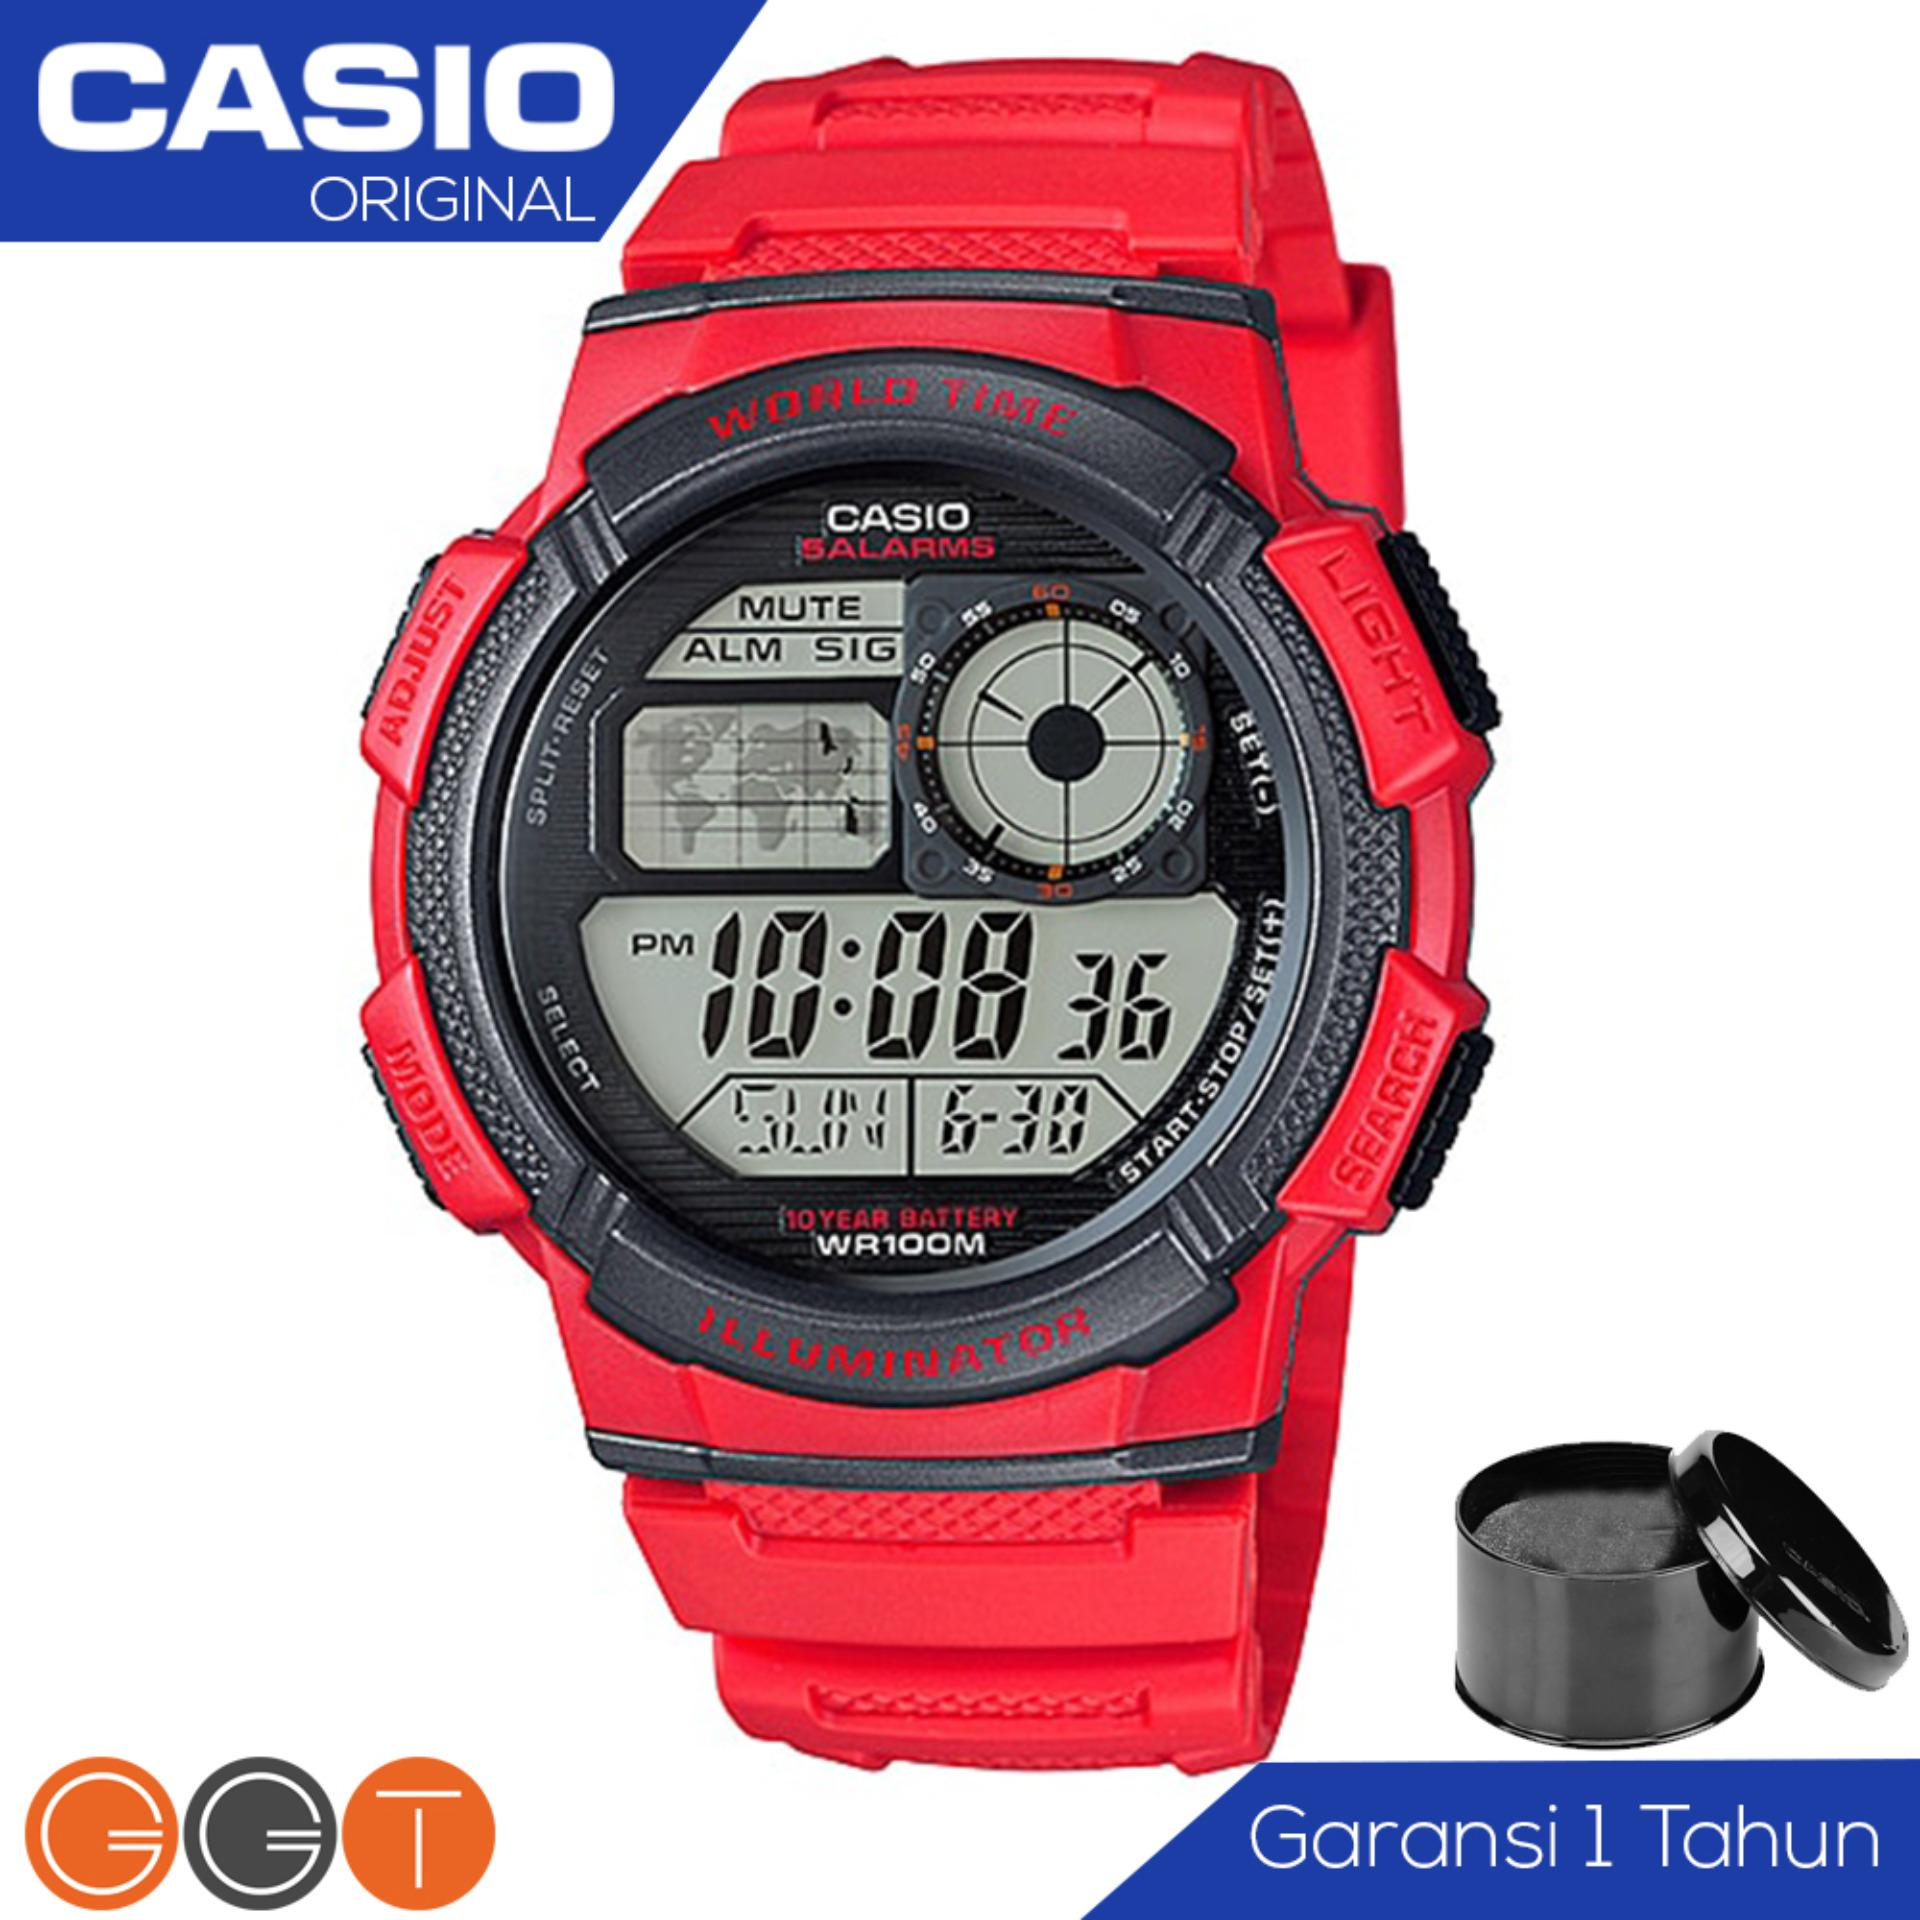 CASIO Illuminator AE-1000W-4AVDF - Jam Tangan Pria - Tali Karet - Digital Movement - Red